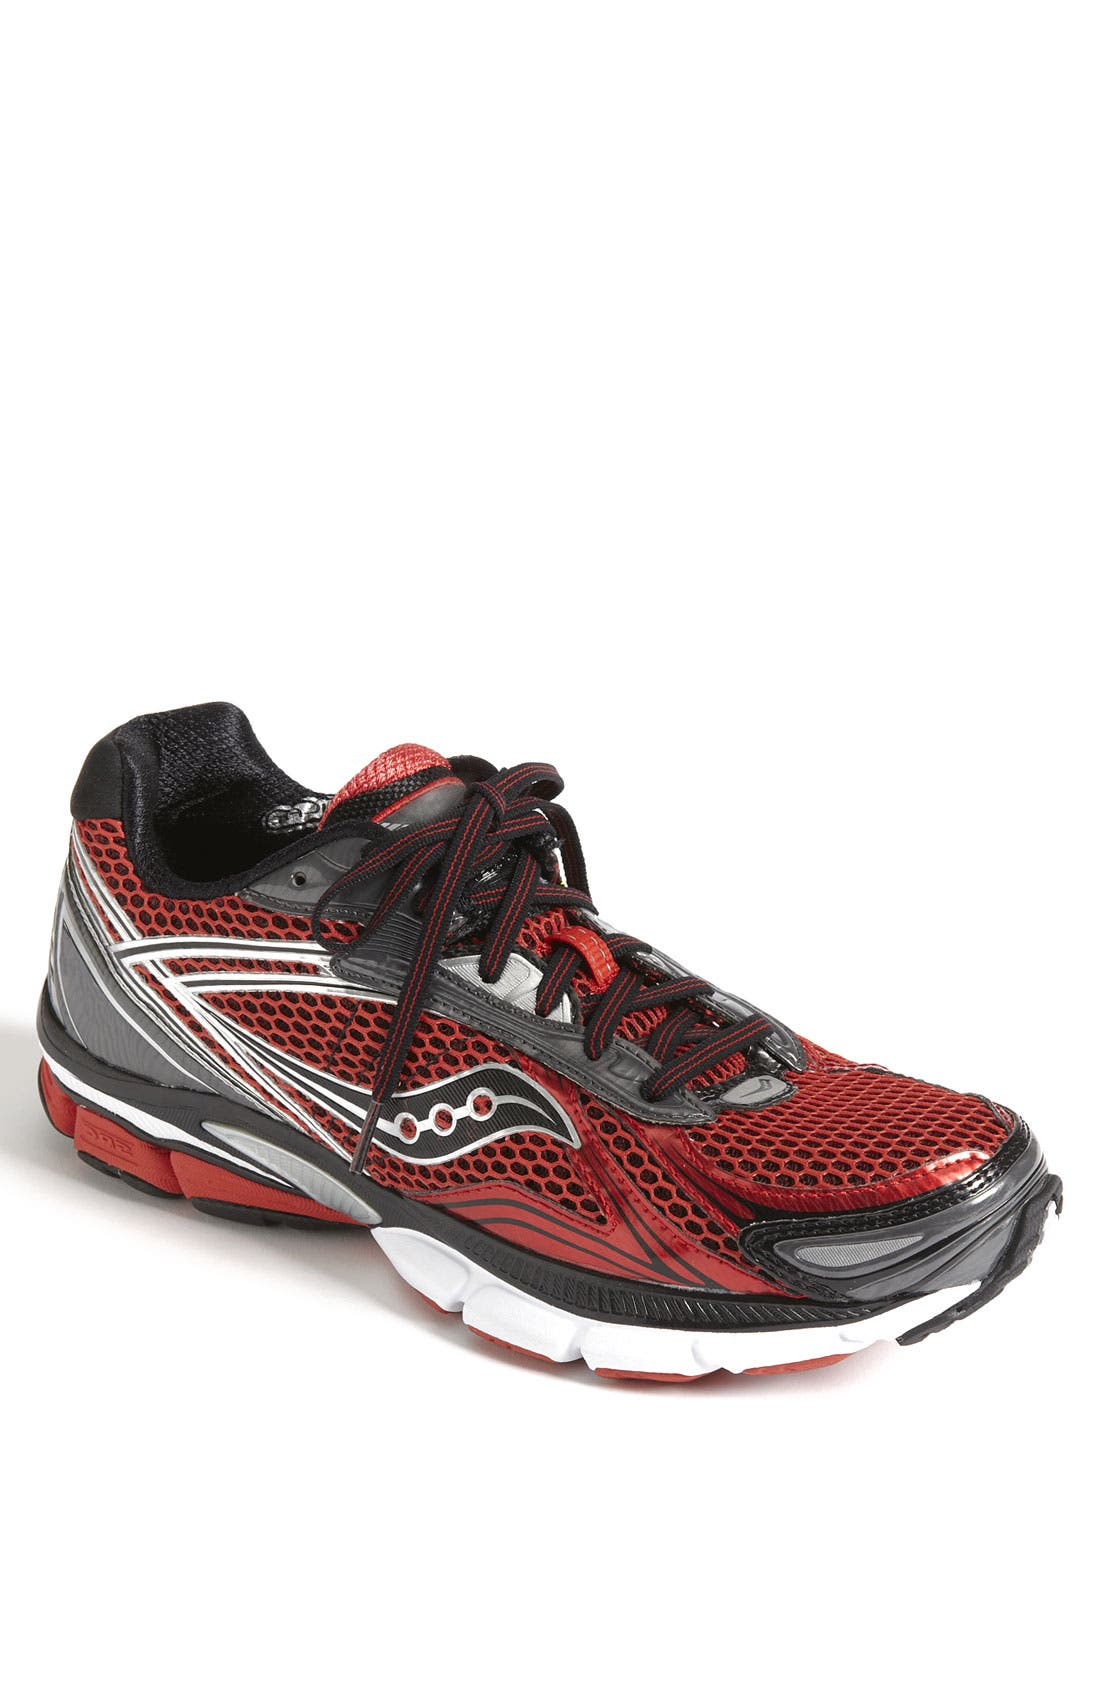 Alternate Image 1 Selected - Saucony 'PowerGrid Hurricane 14' Running Shoe (Men)